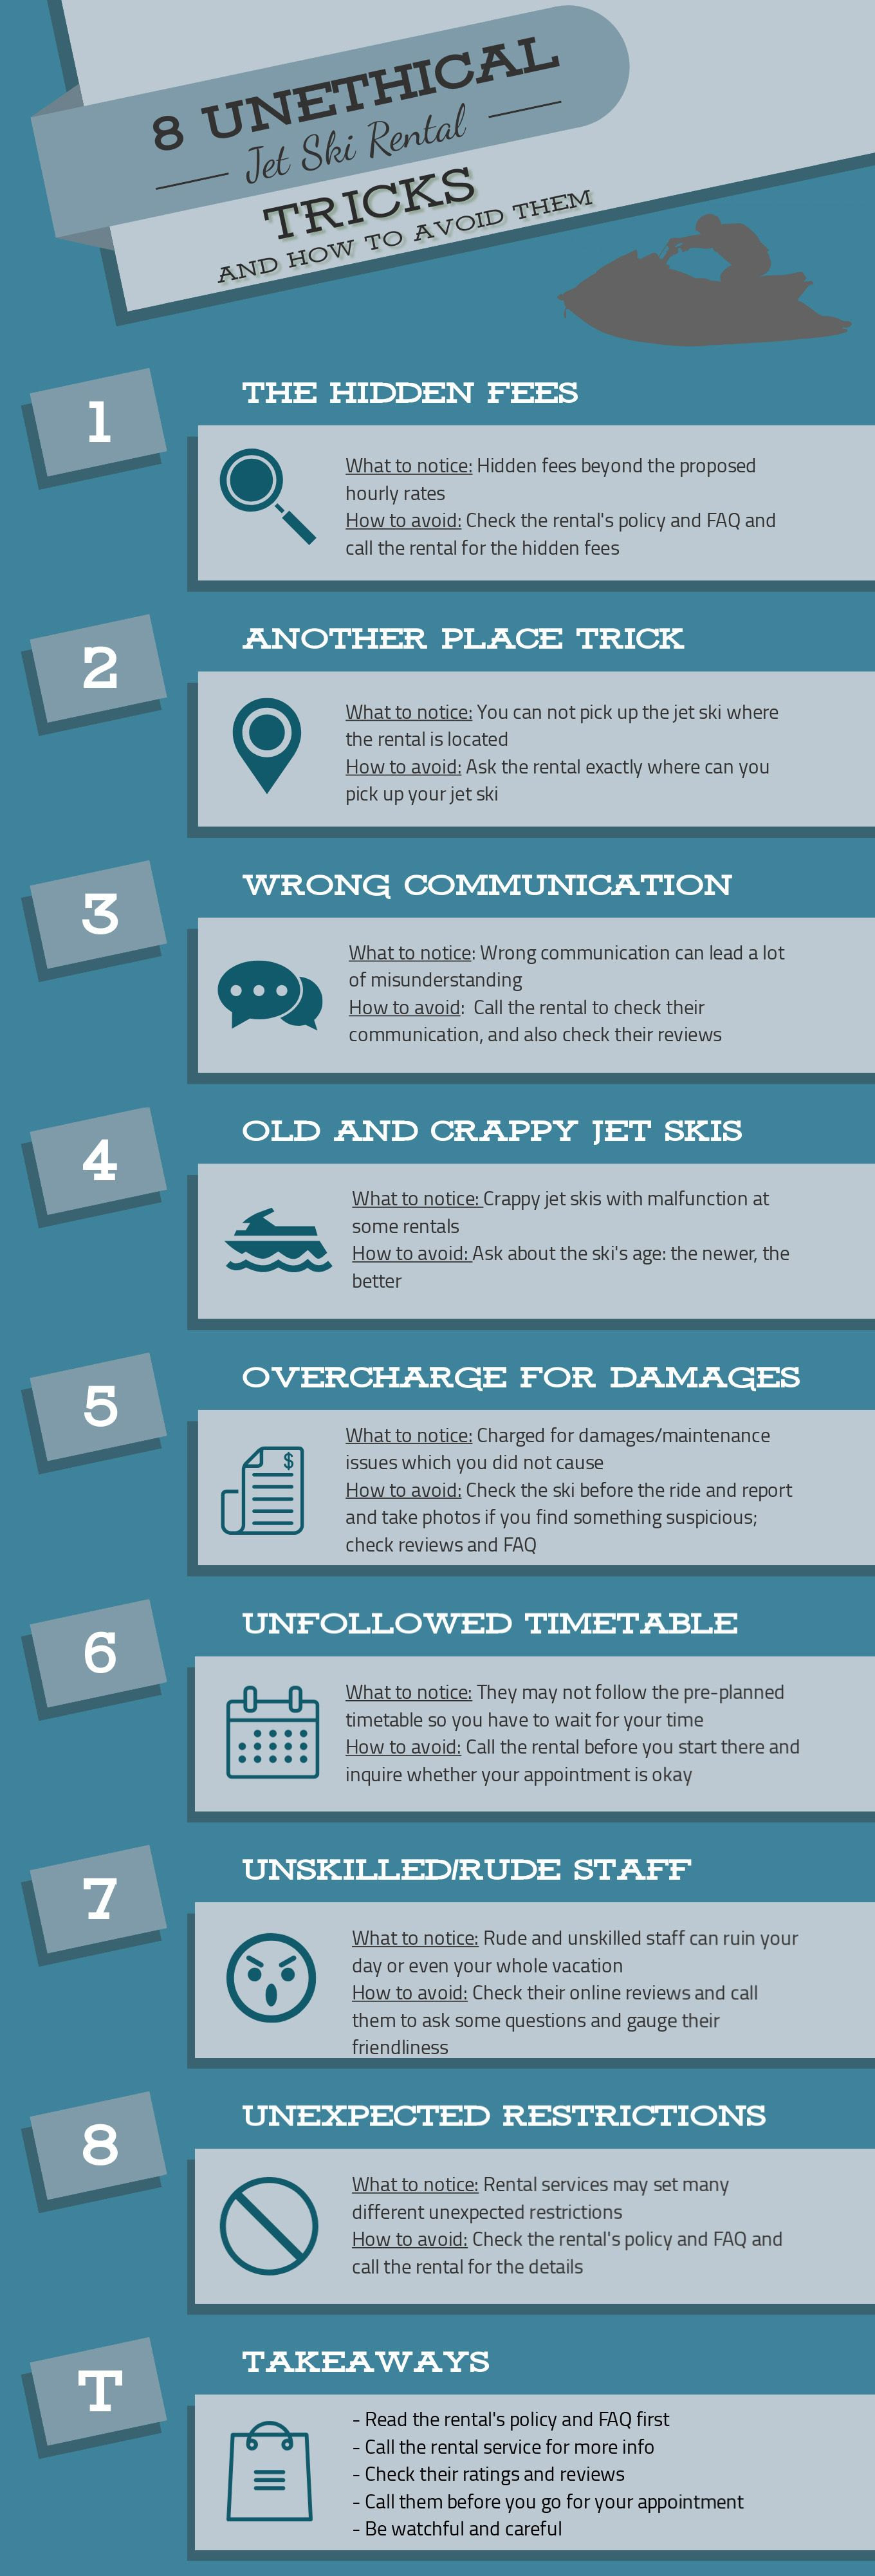 8 Most Unethical Jet Ski Rental Tricks To Avoid Infographic Jetdrift Jet Ski Rentals Jet Ski Skiing